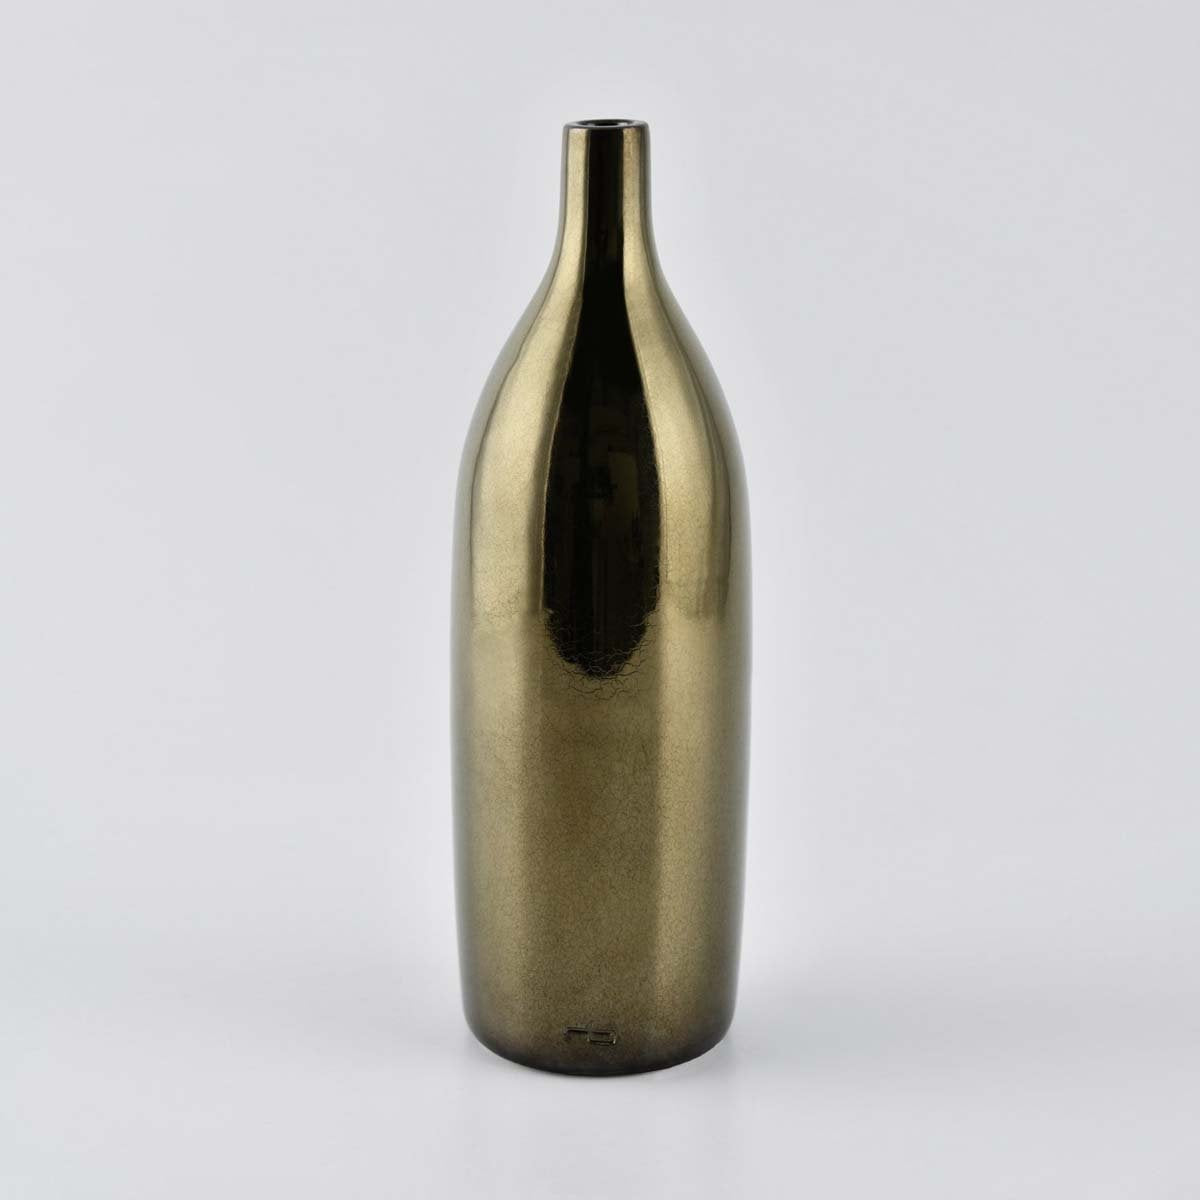 LARGE GIORGIO VASE by Vorster & Braye at SARZA. bottle, decor, Giorgio, homeware, VASES, Vorster&Braye